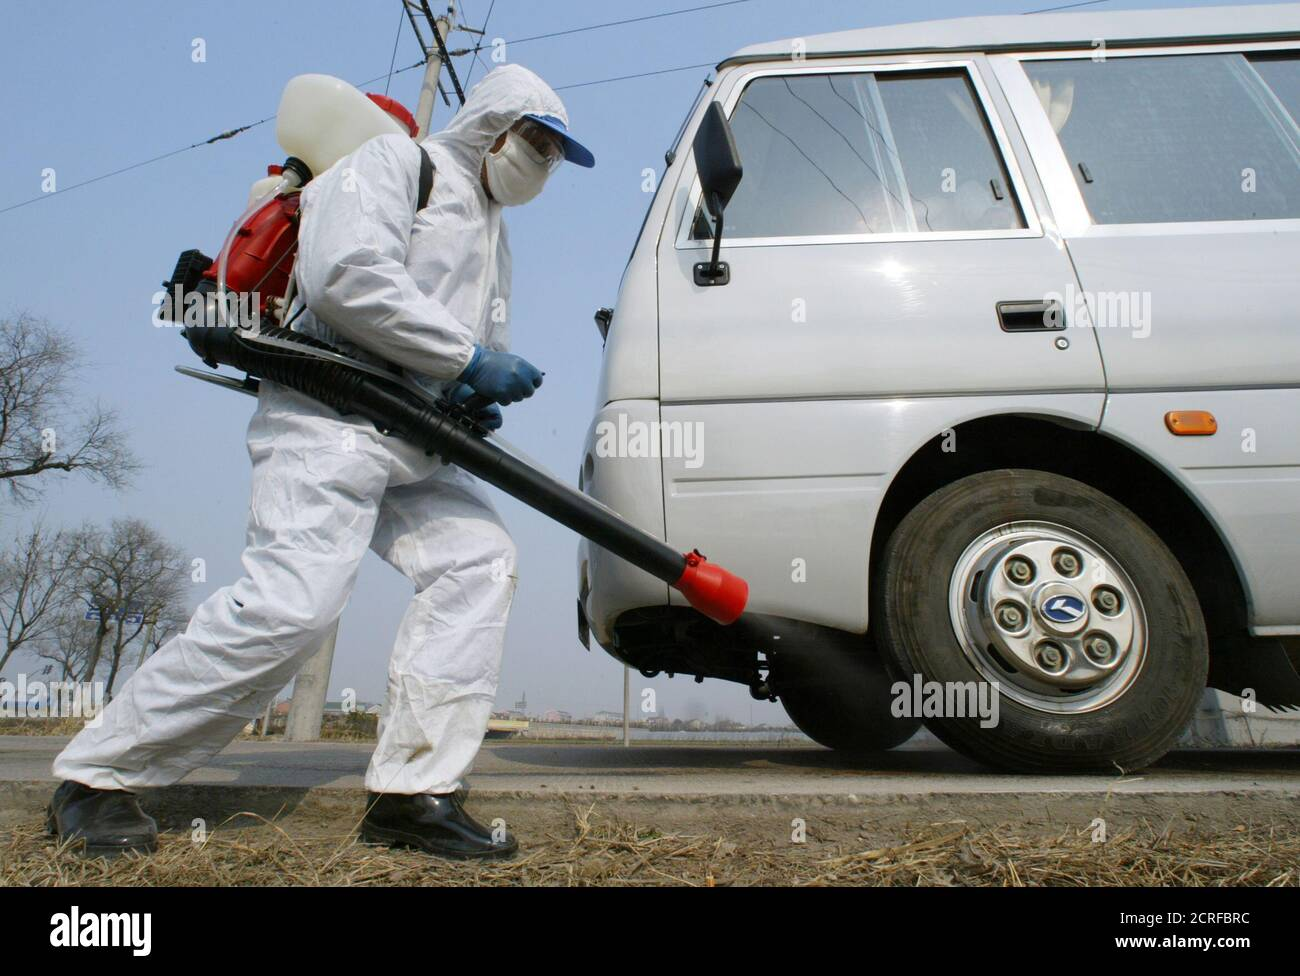 A health worker disinfects a vehicle passing Nanhui district, near the farm where bird flu case was reported on the outskirts of Shanghai, February 13, 2004. China on Friday reported outbreaks of bird flu in Shanghai and three other regions as the World Health Organisation said it could not rule out the possibility of human infection in the country. Fourteen of China's 31 provinces and major cities have confirmed outbreaks of the avian influenza that has killed 14 Vietnamese and five Thais and led to the culling of millions of poultry in eight Asian countries. REUTERS/Claro Cortes IV  CC/FA Stock Photo